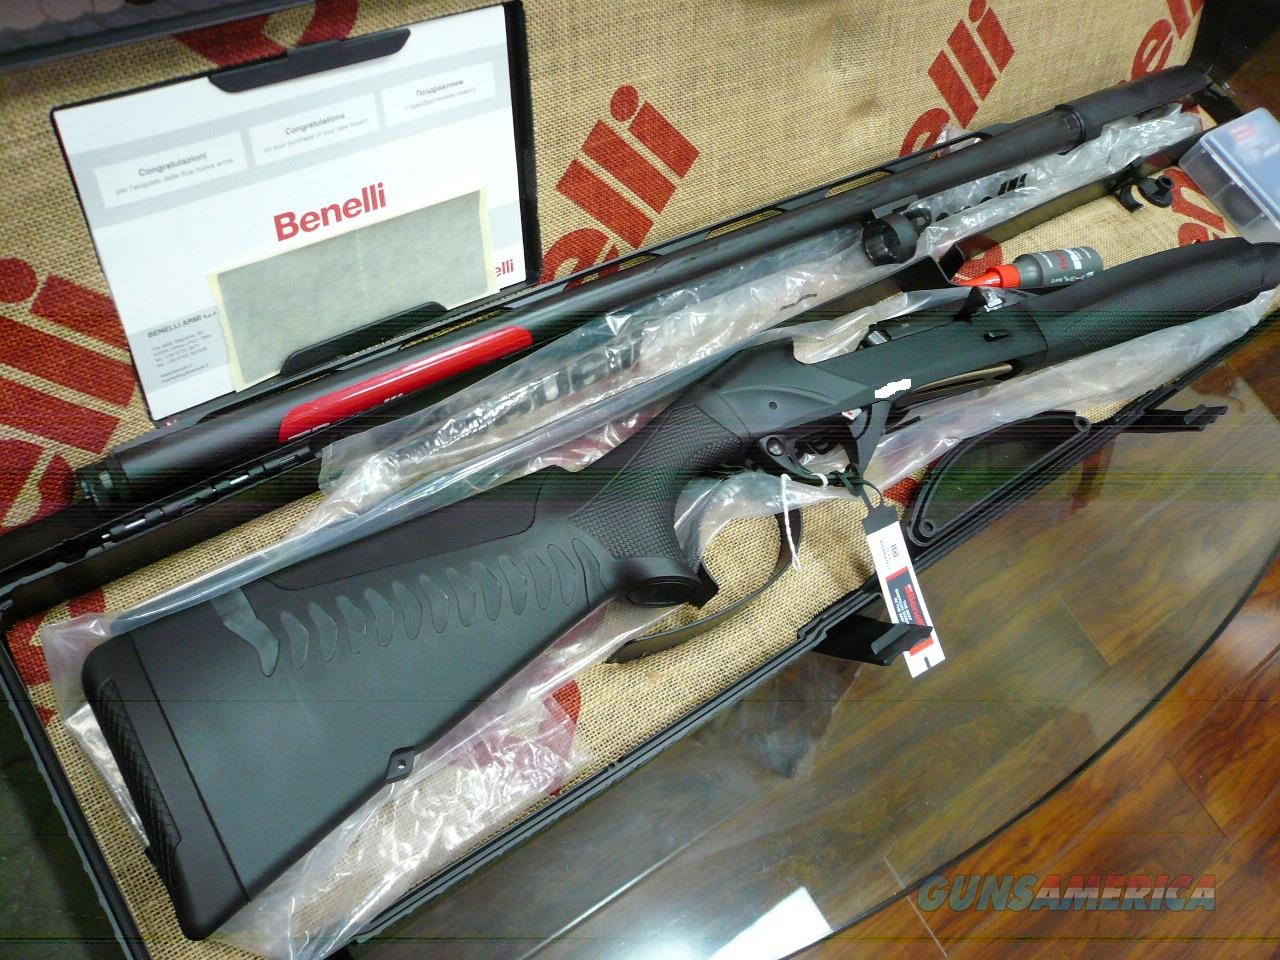 "SUPER BLACK EAGLE III BLK 28"" NIB  Guns > Shotguns > Benelli Shotguns > Sporting"